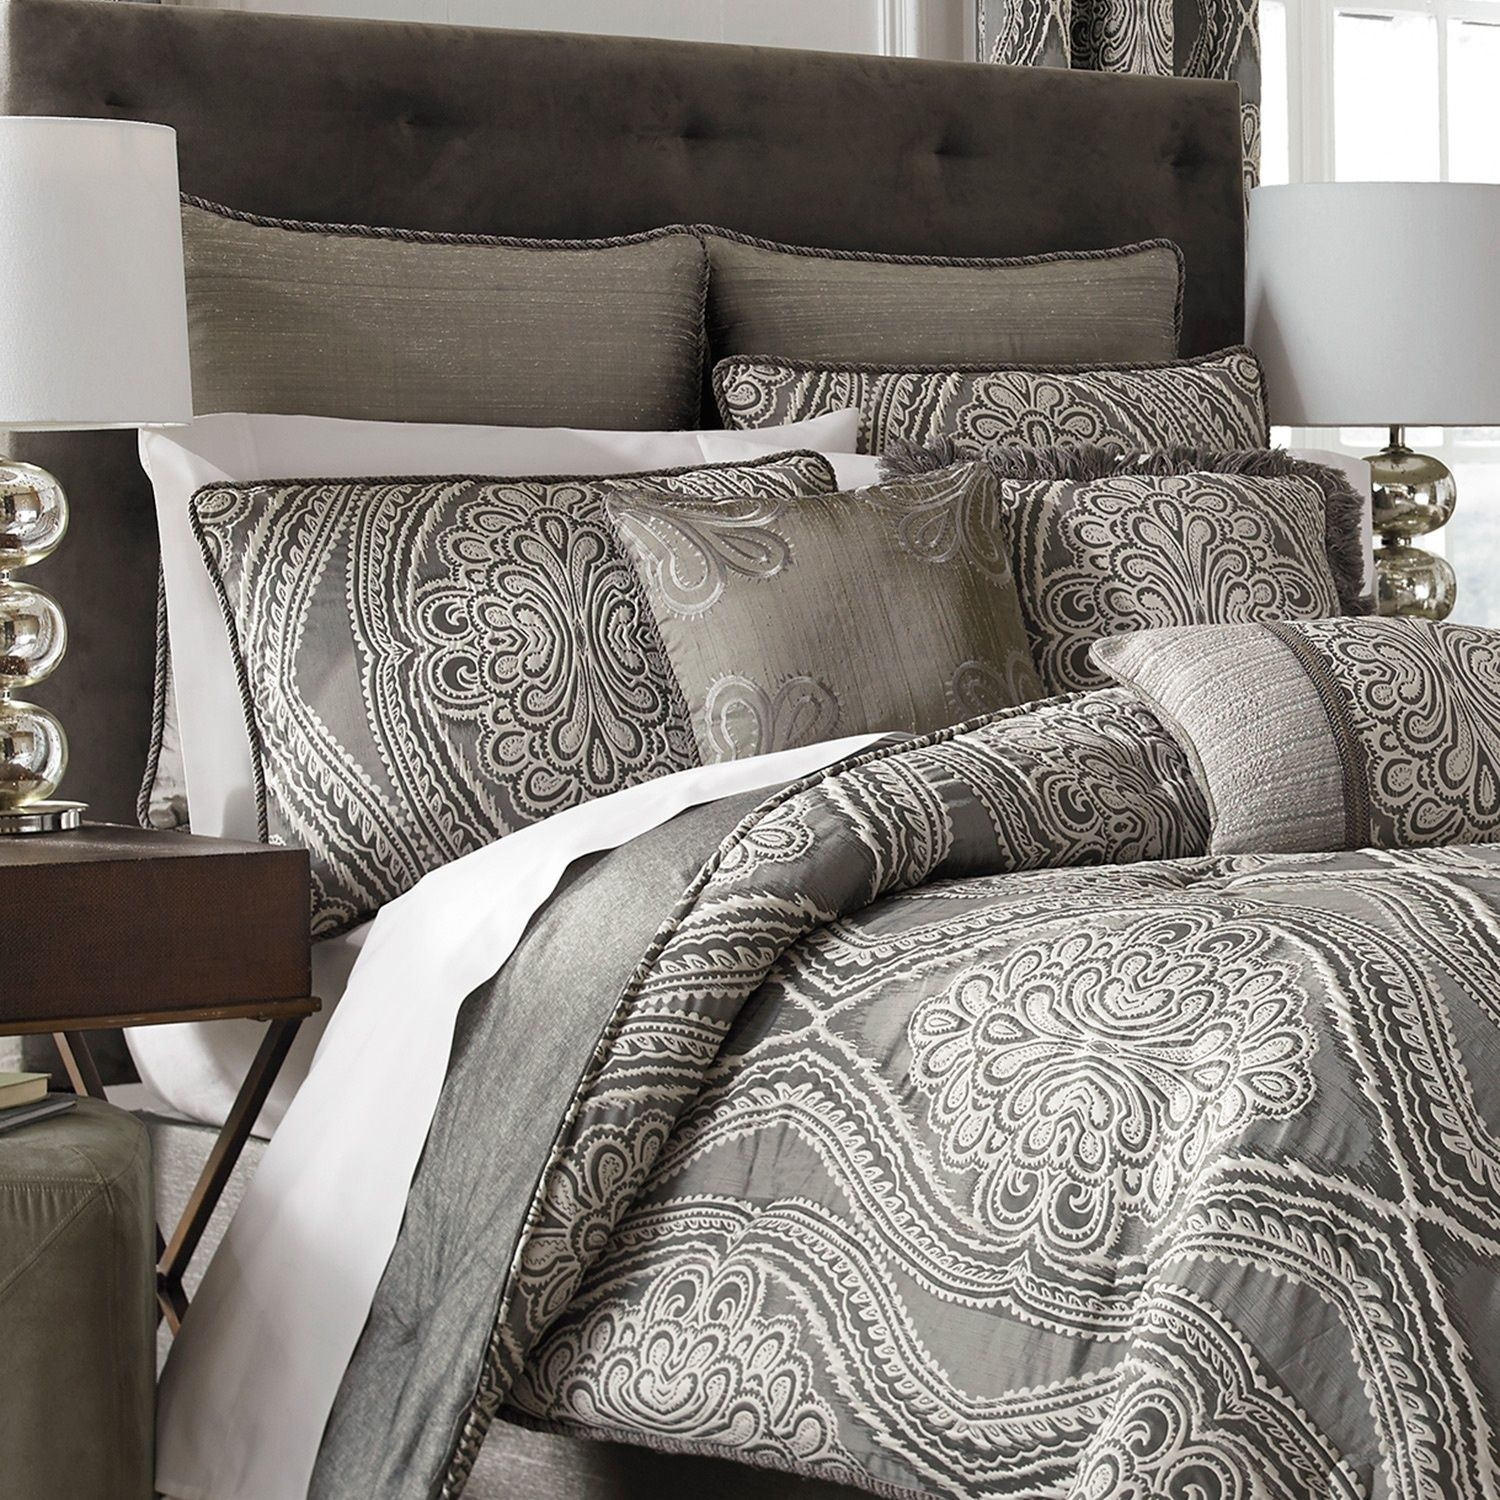 Croscill Amadeo Bedding Collection Beds Bedding